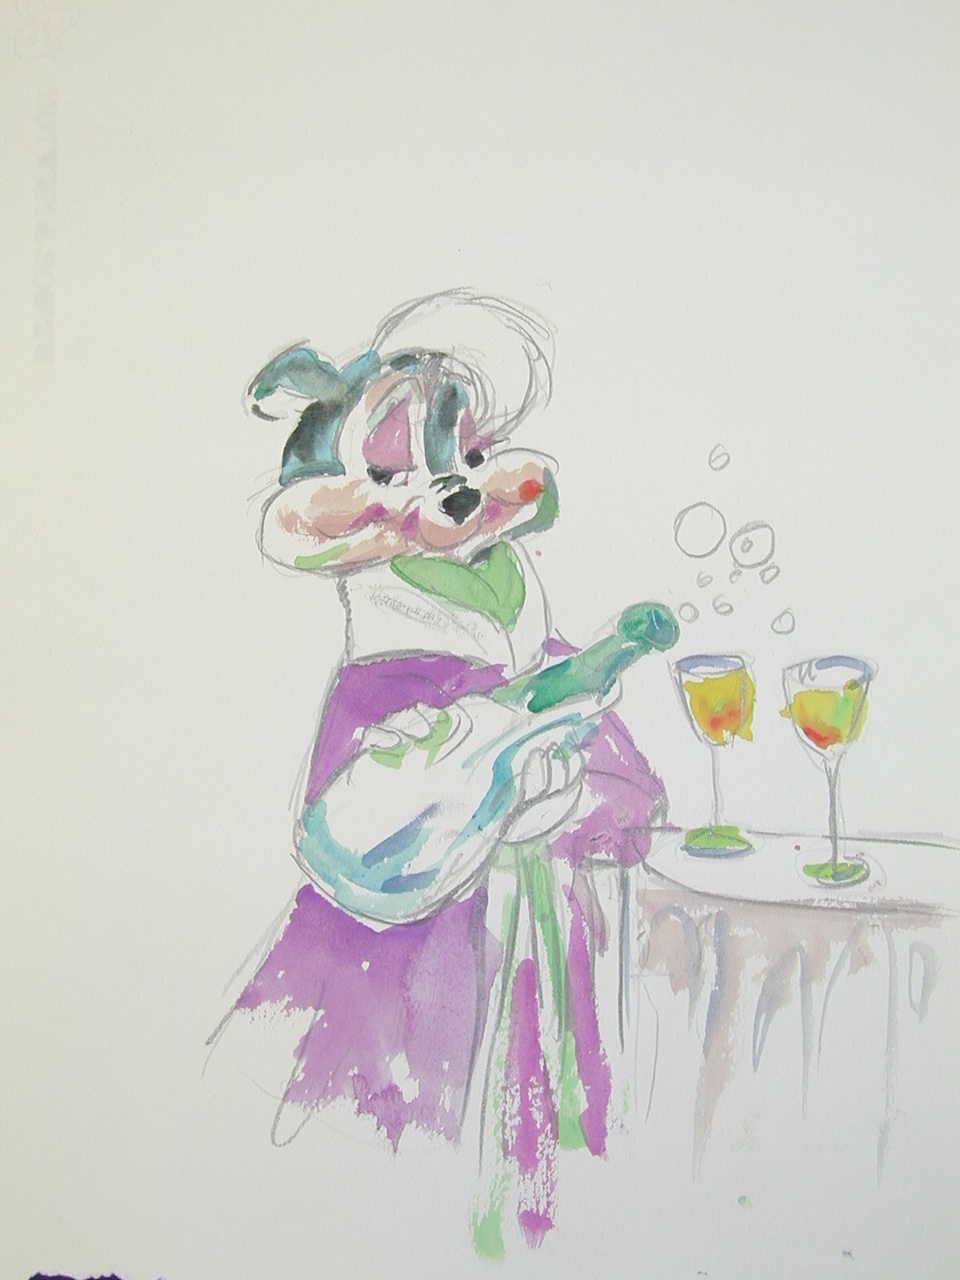 Chuck Jones   Pepe LePew   Watercolor on Arches Paper   14 x 11 inches